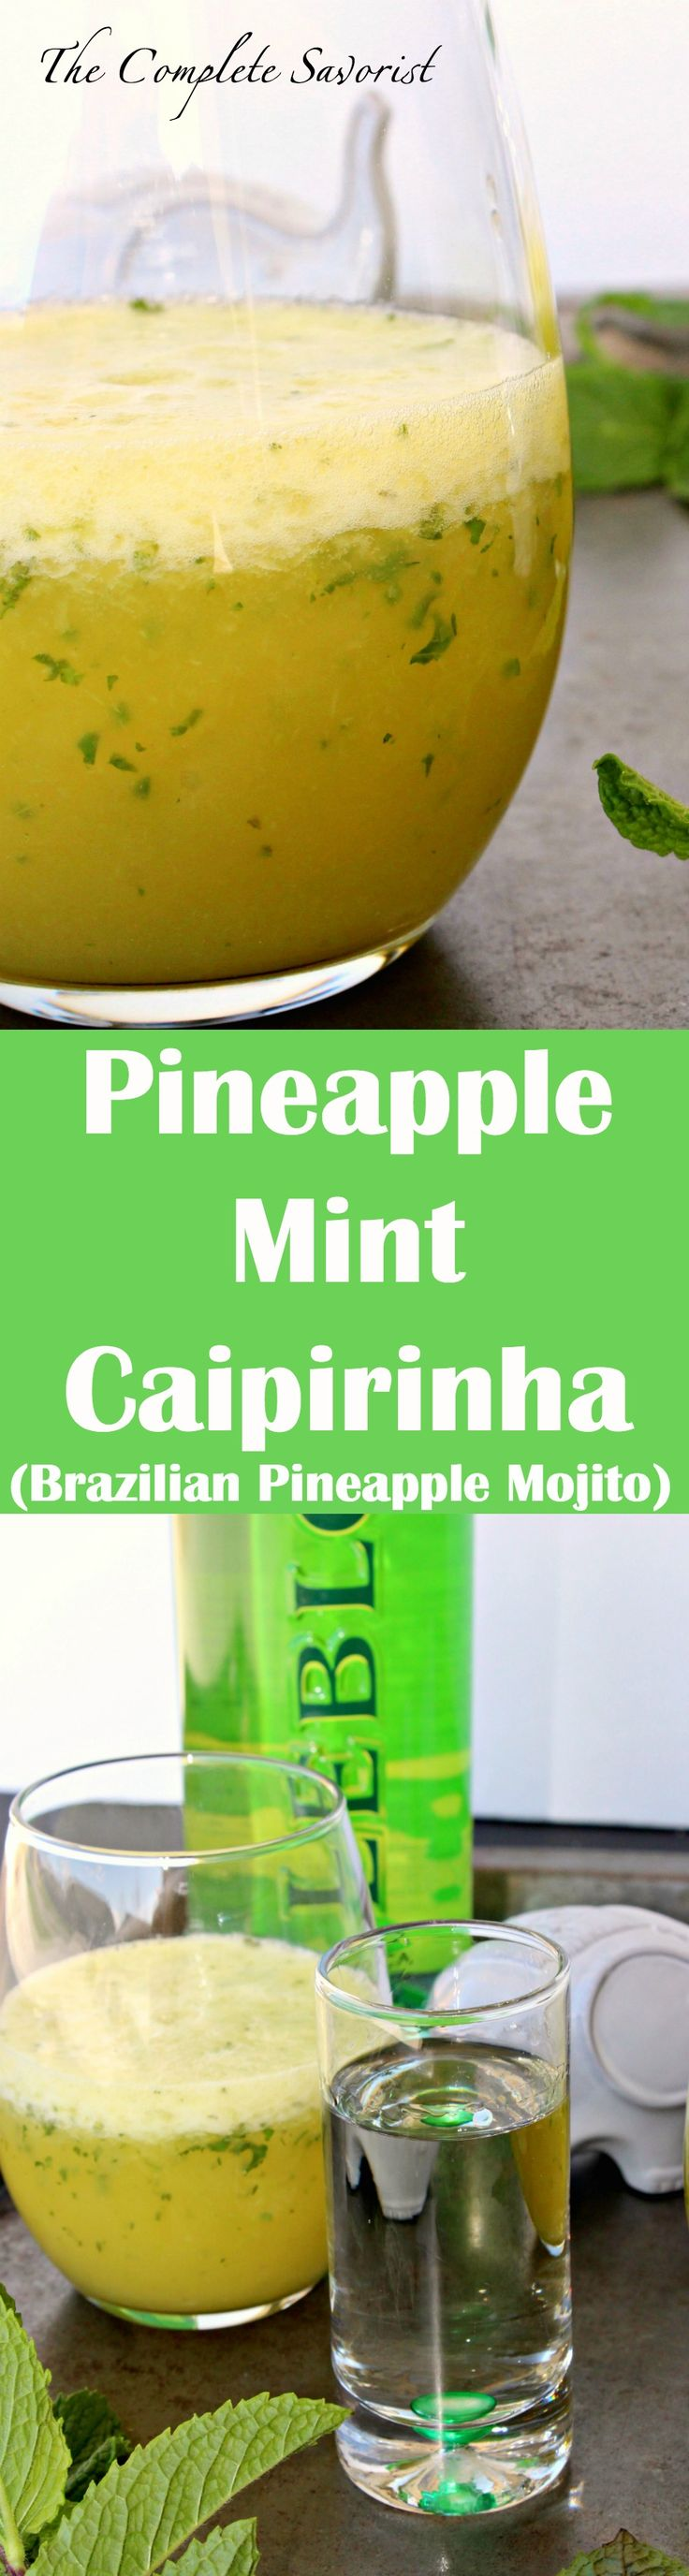 ideas about caipirinha drink vodka cocktails pineapple mint caipirinha ian pineapple mojito